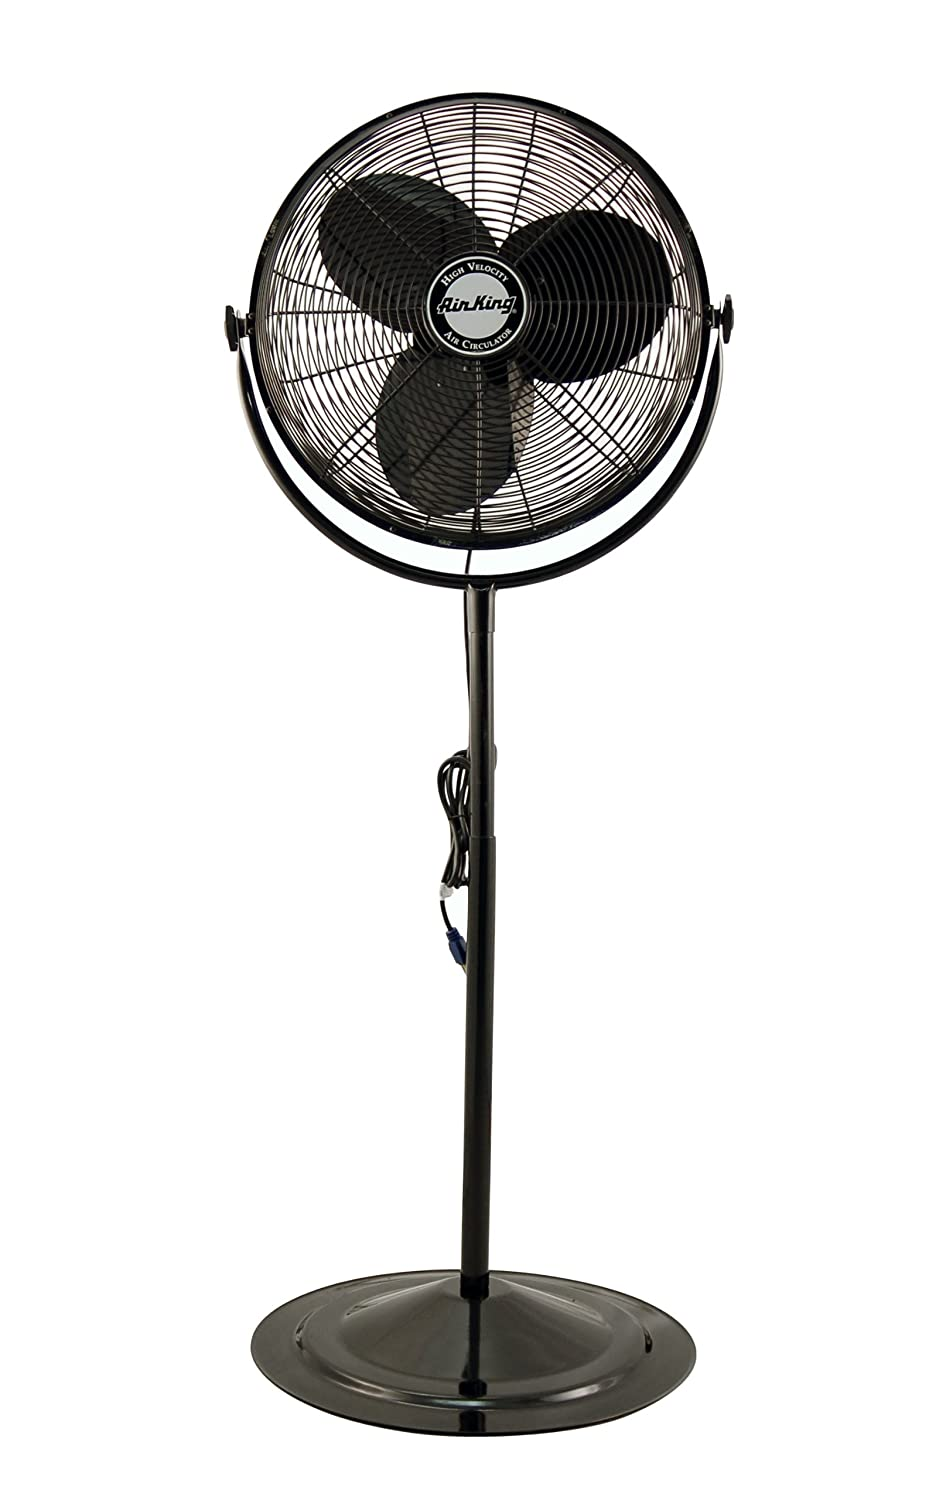 Air King 9420: A fan designed for cooling large rooms